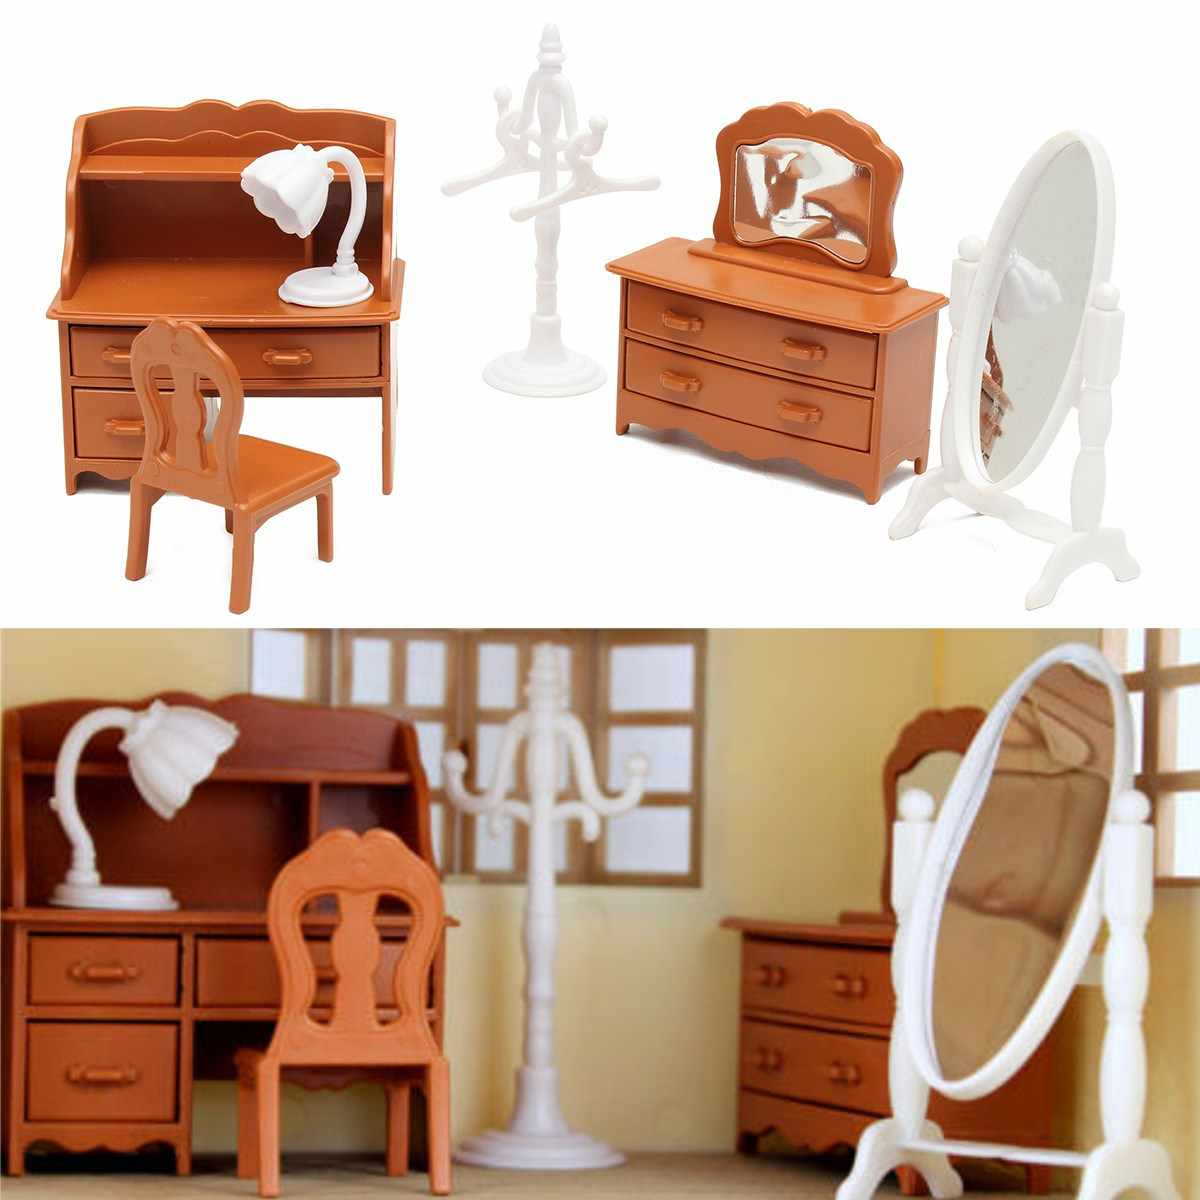 Miniature Living Room Dressing Table Furniture Sets For Mini Children DollHouse Home Decor Kids Toy Doll House Toys Gift